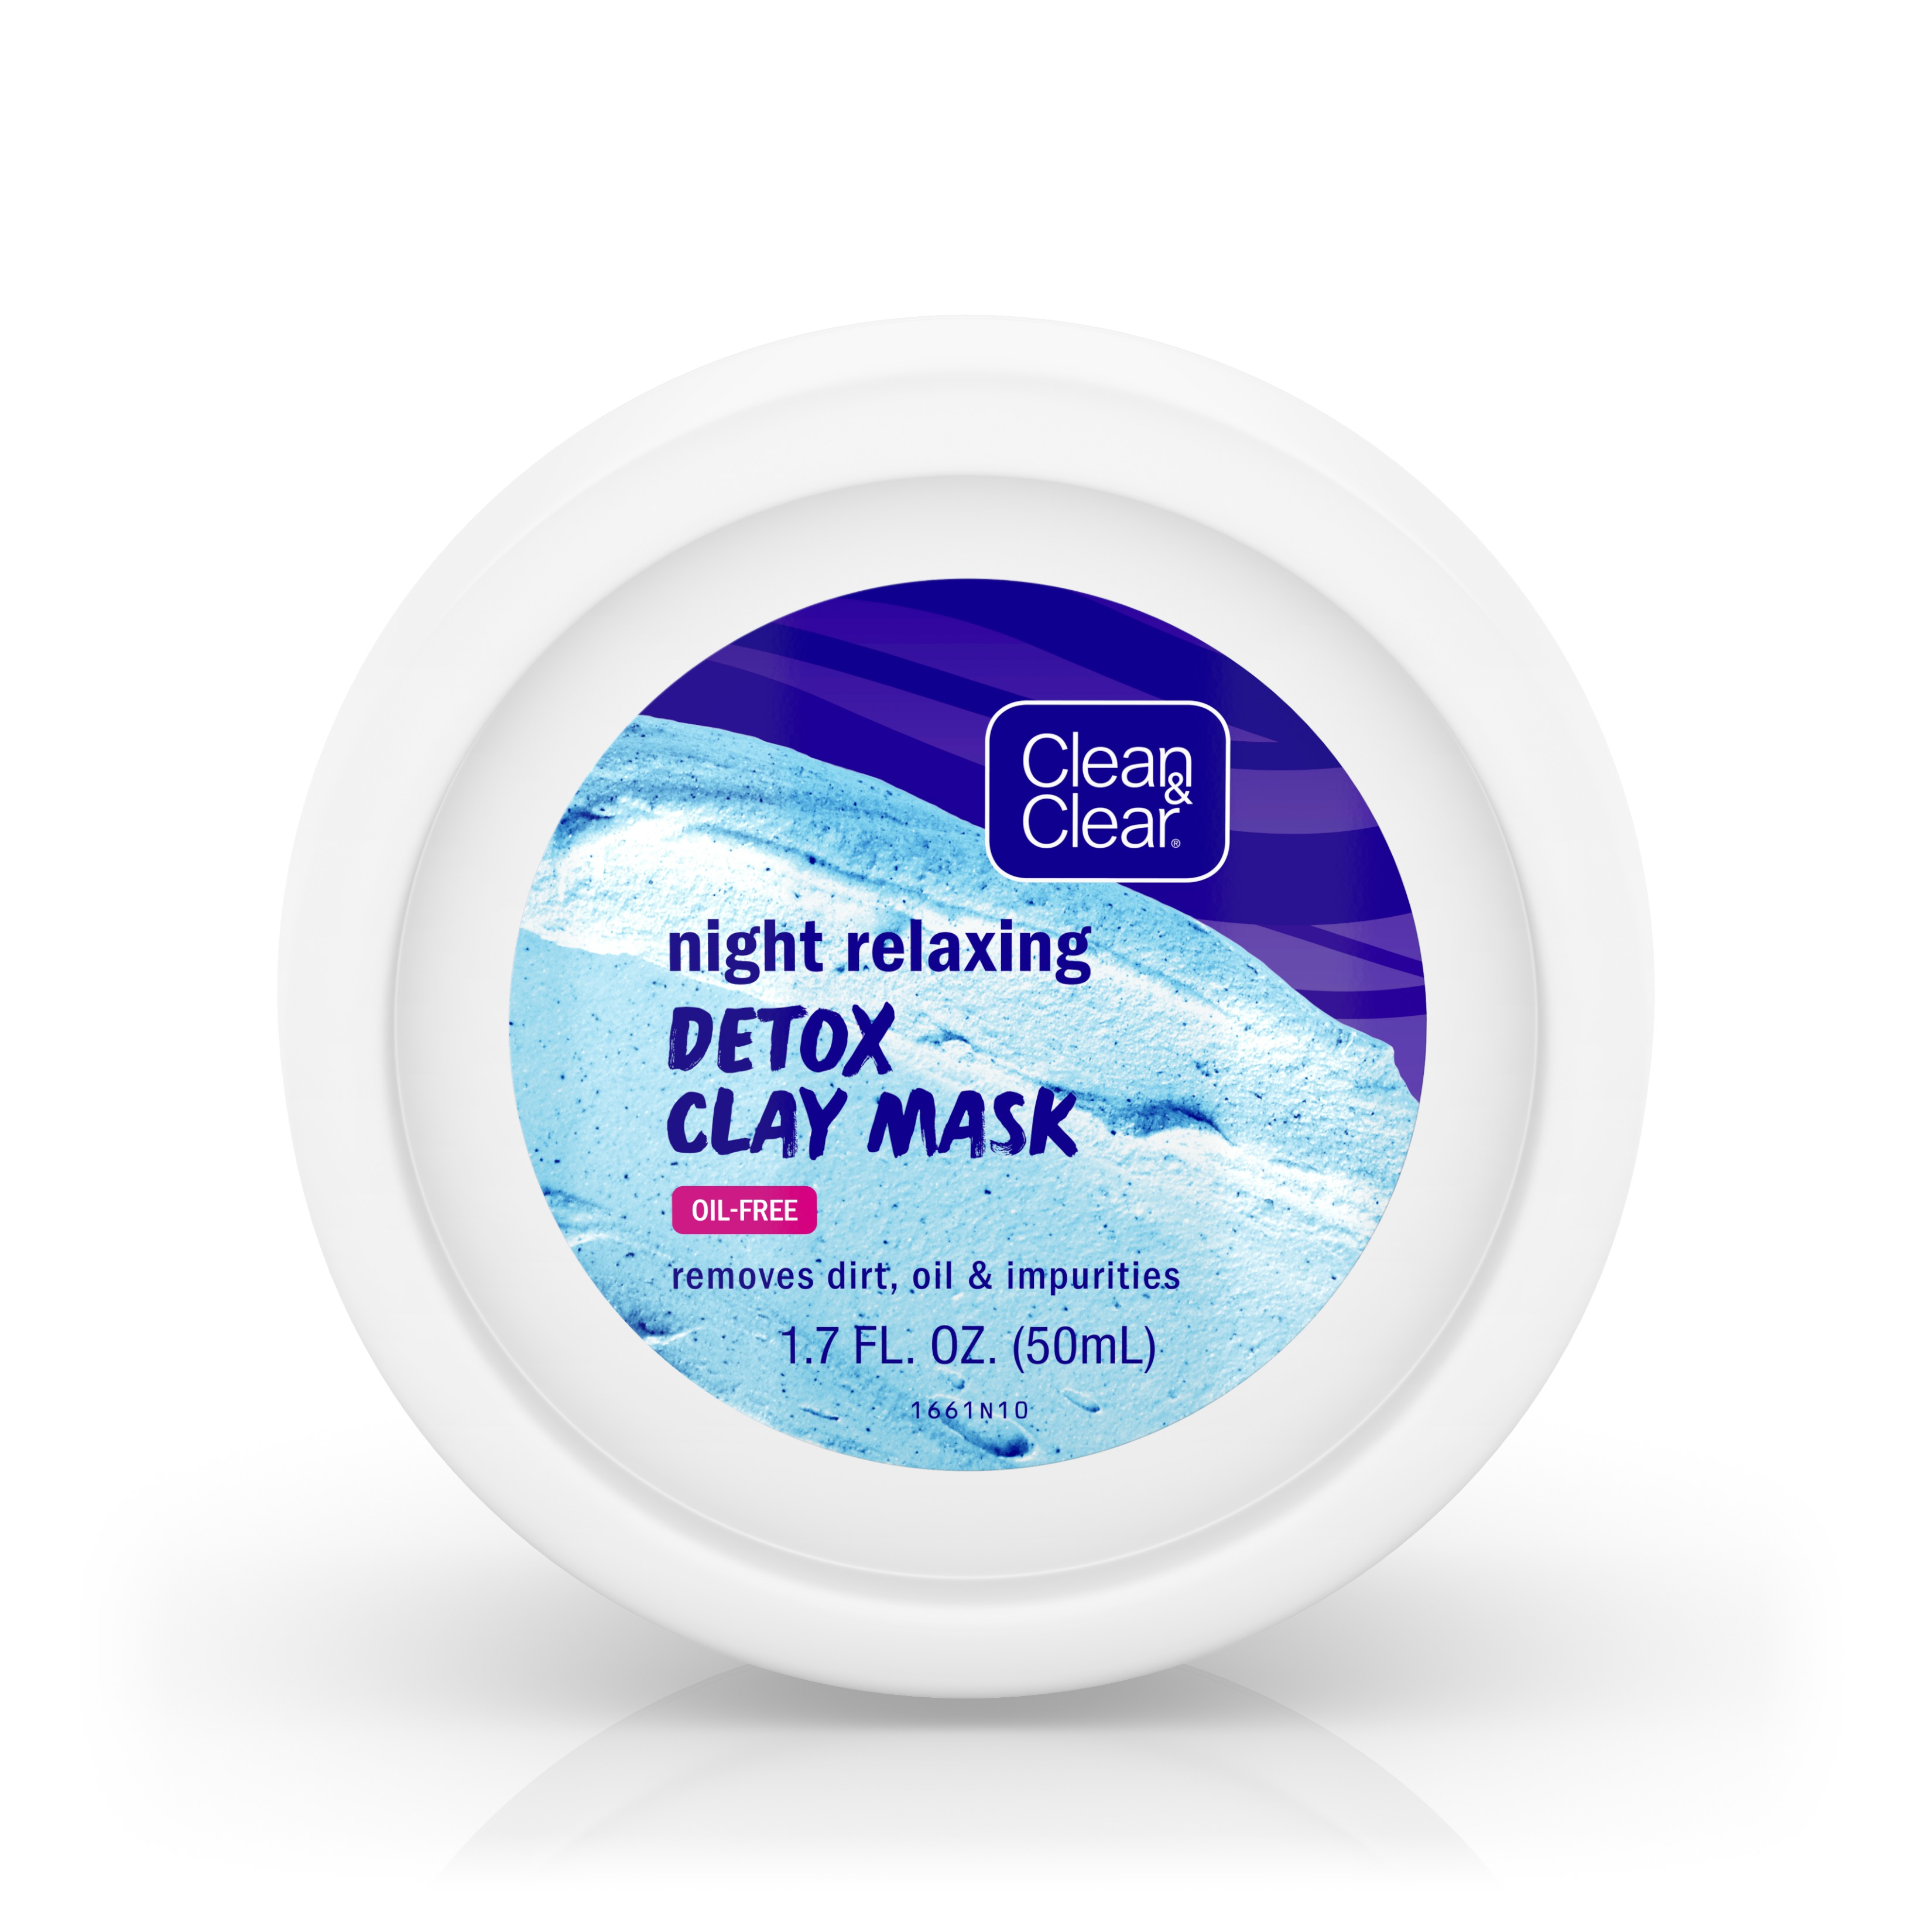 Moroccan Clay Purifying Mask (for Oily/ Combination Skin)  57g/2oz SkinFood - Platinum Grape Cell Cream - 55g/1.94oz